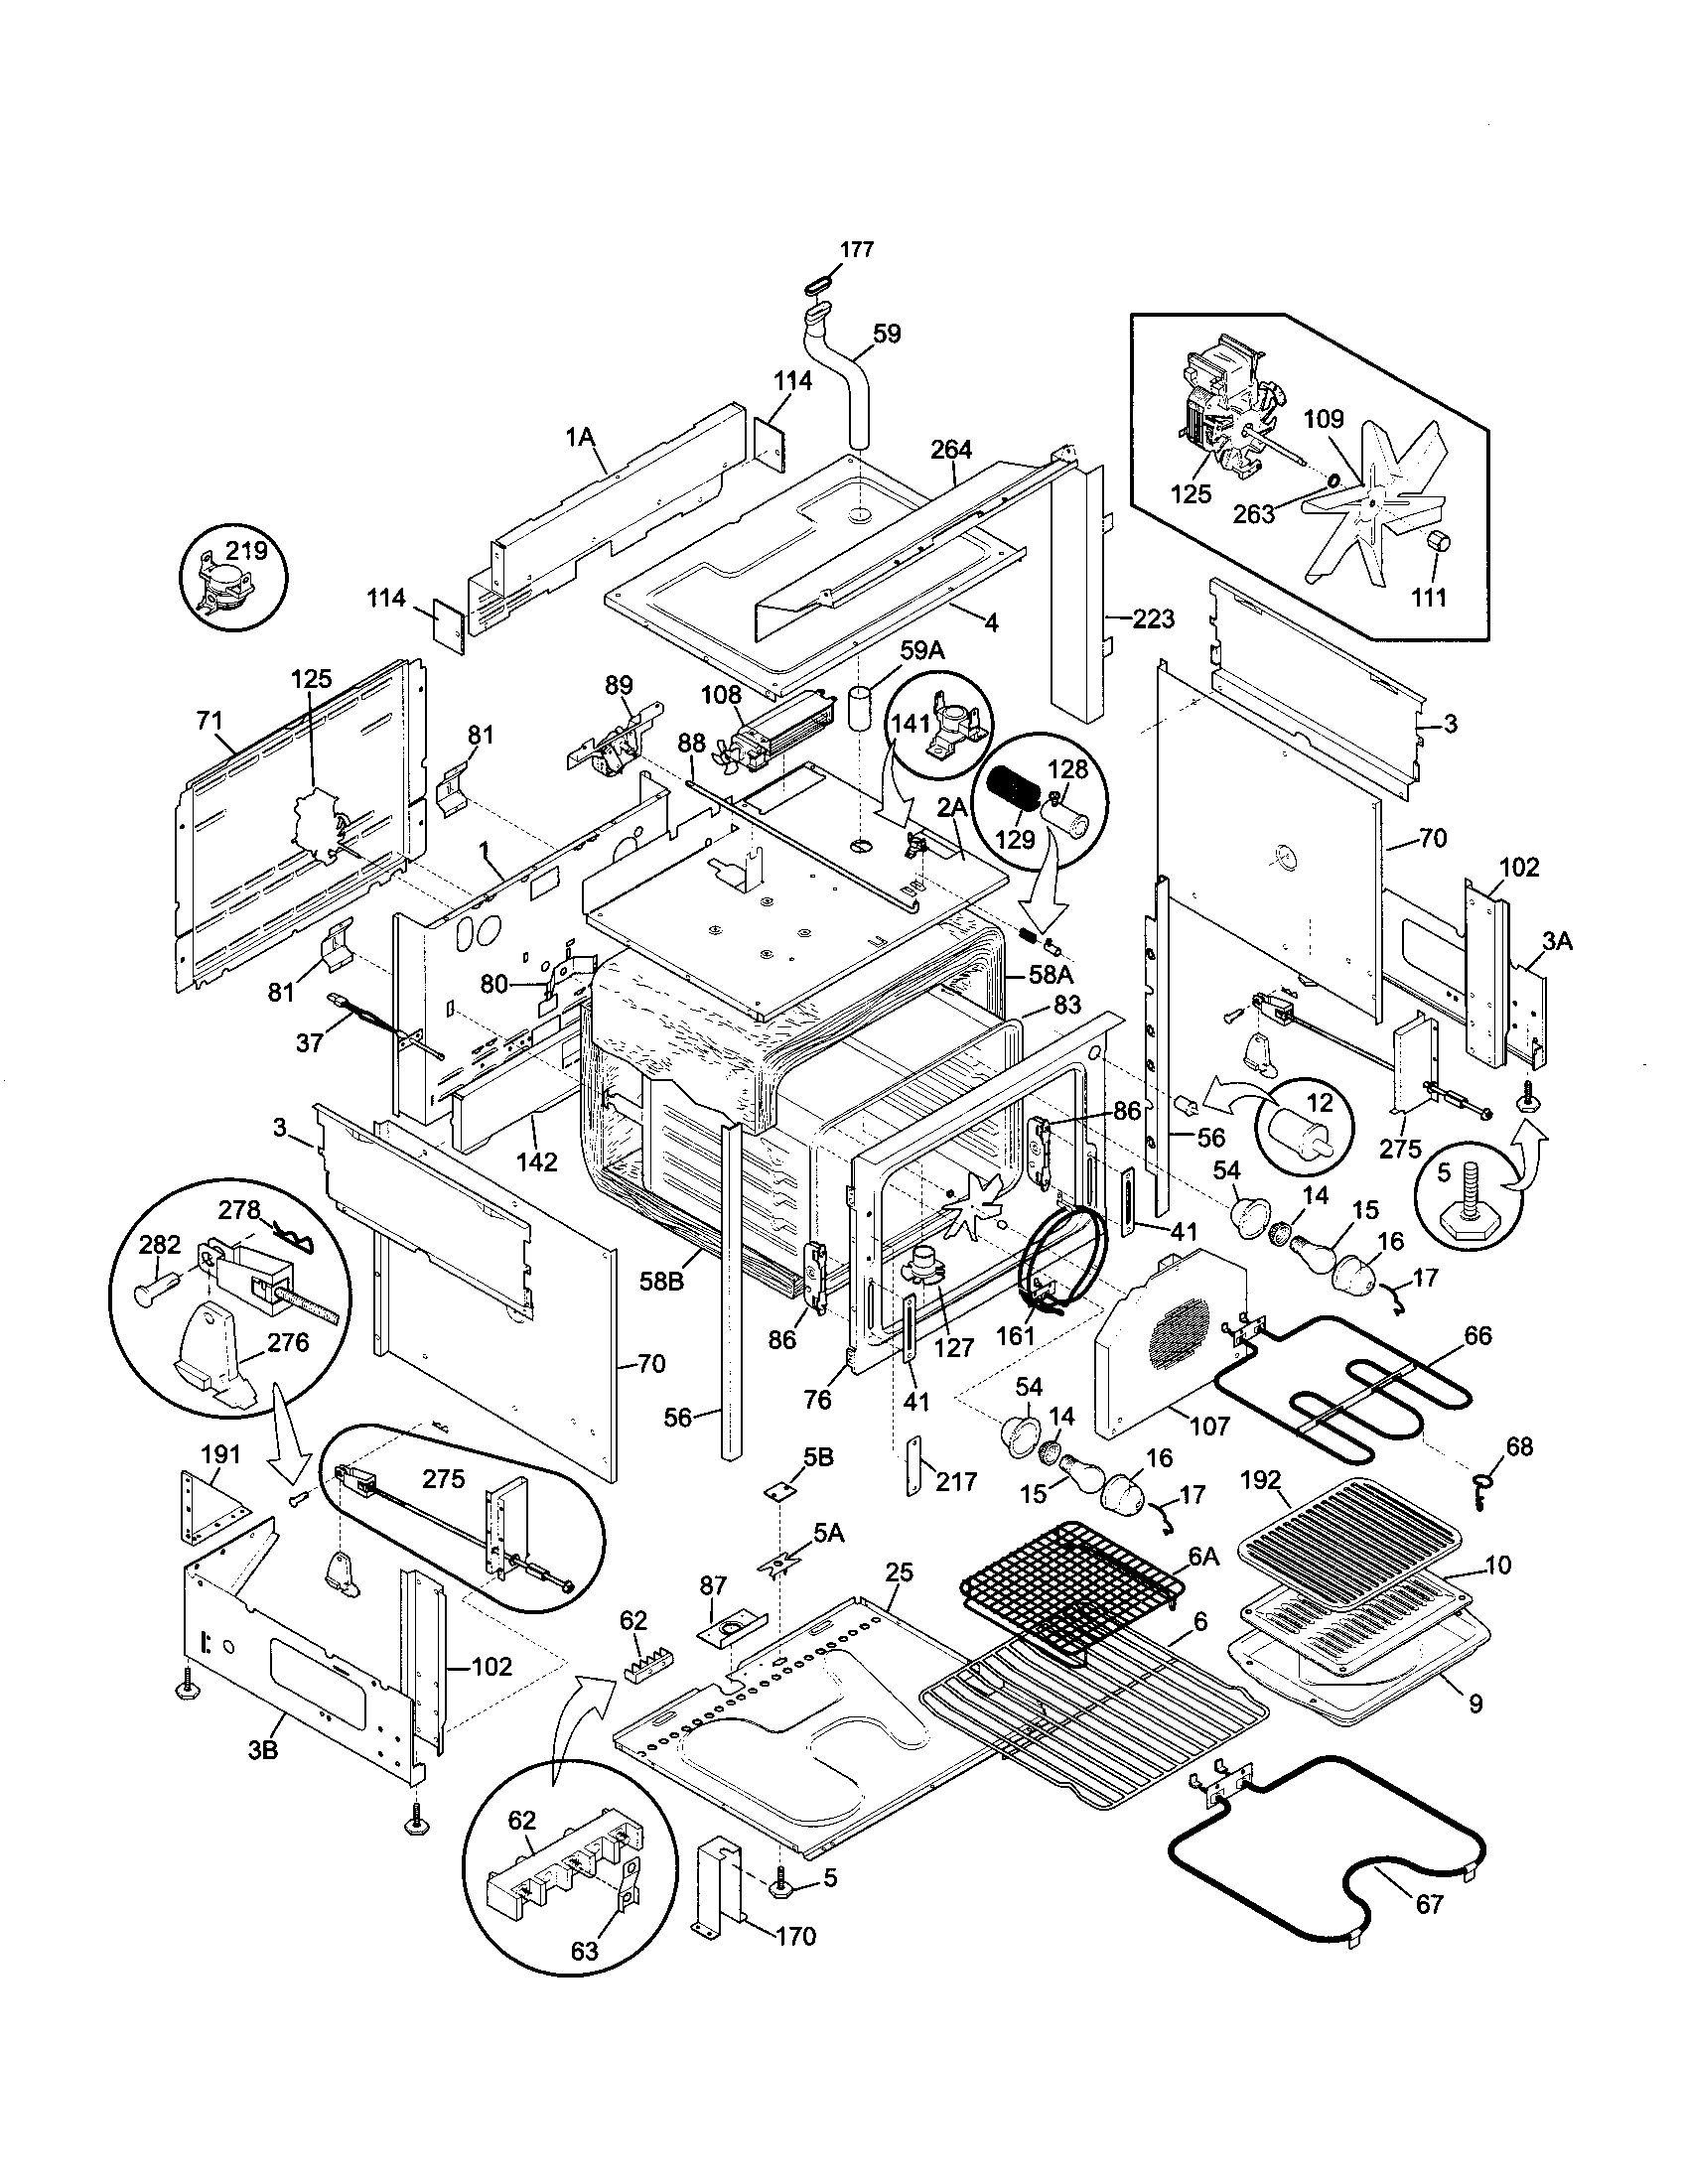 Diagram Of Kenmore Elite Washer